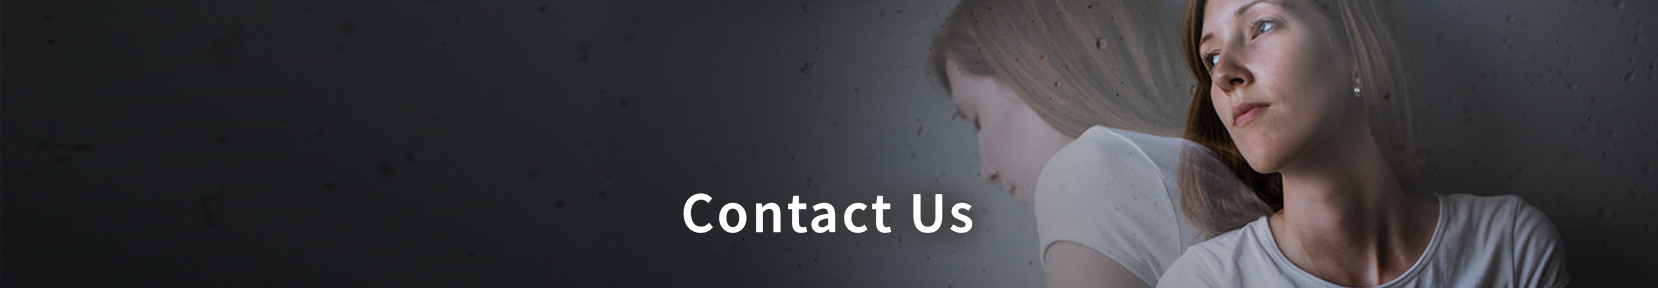 Brightside Counseling Contact Us Banner - Buffalo, NY